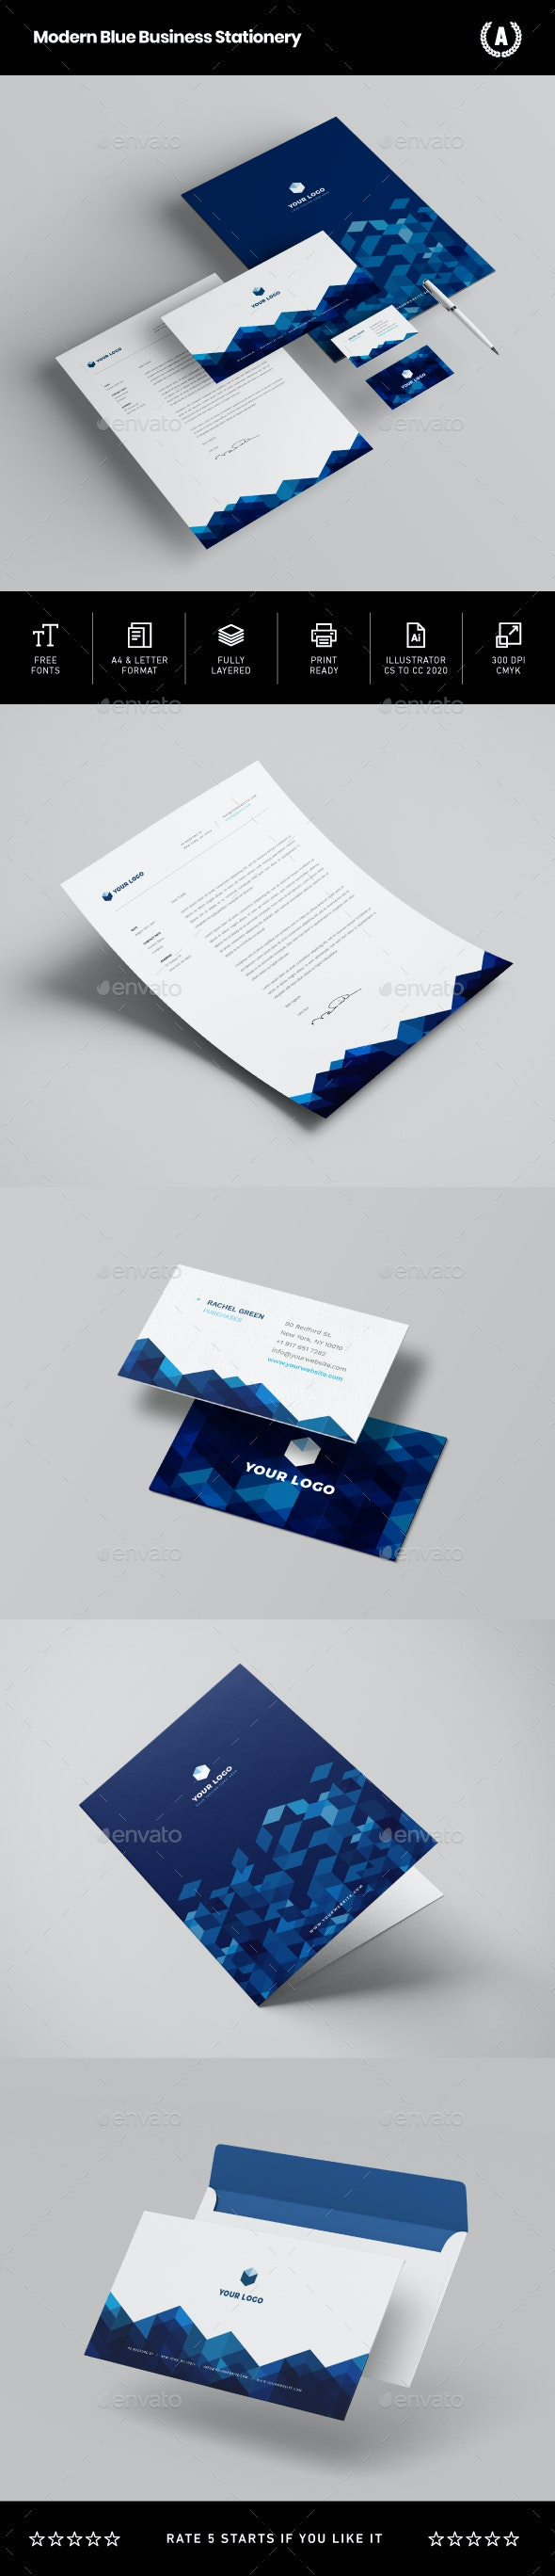 Modern Blue Business Stationery - Stationery Print Templates